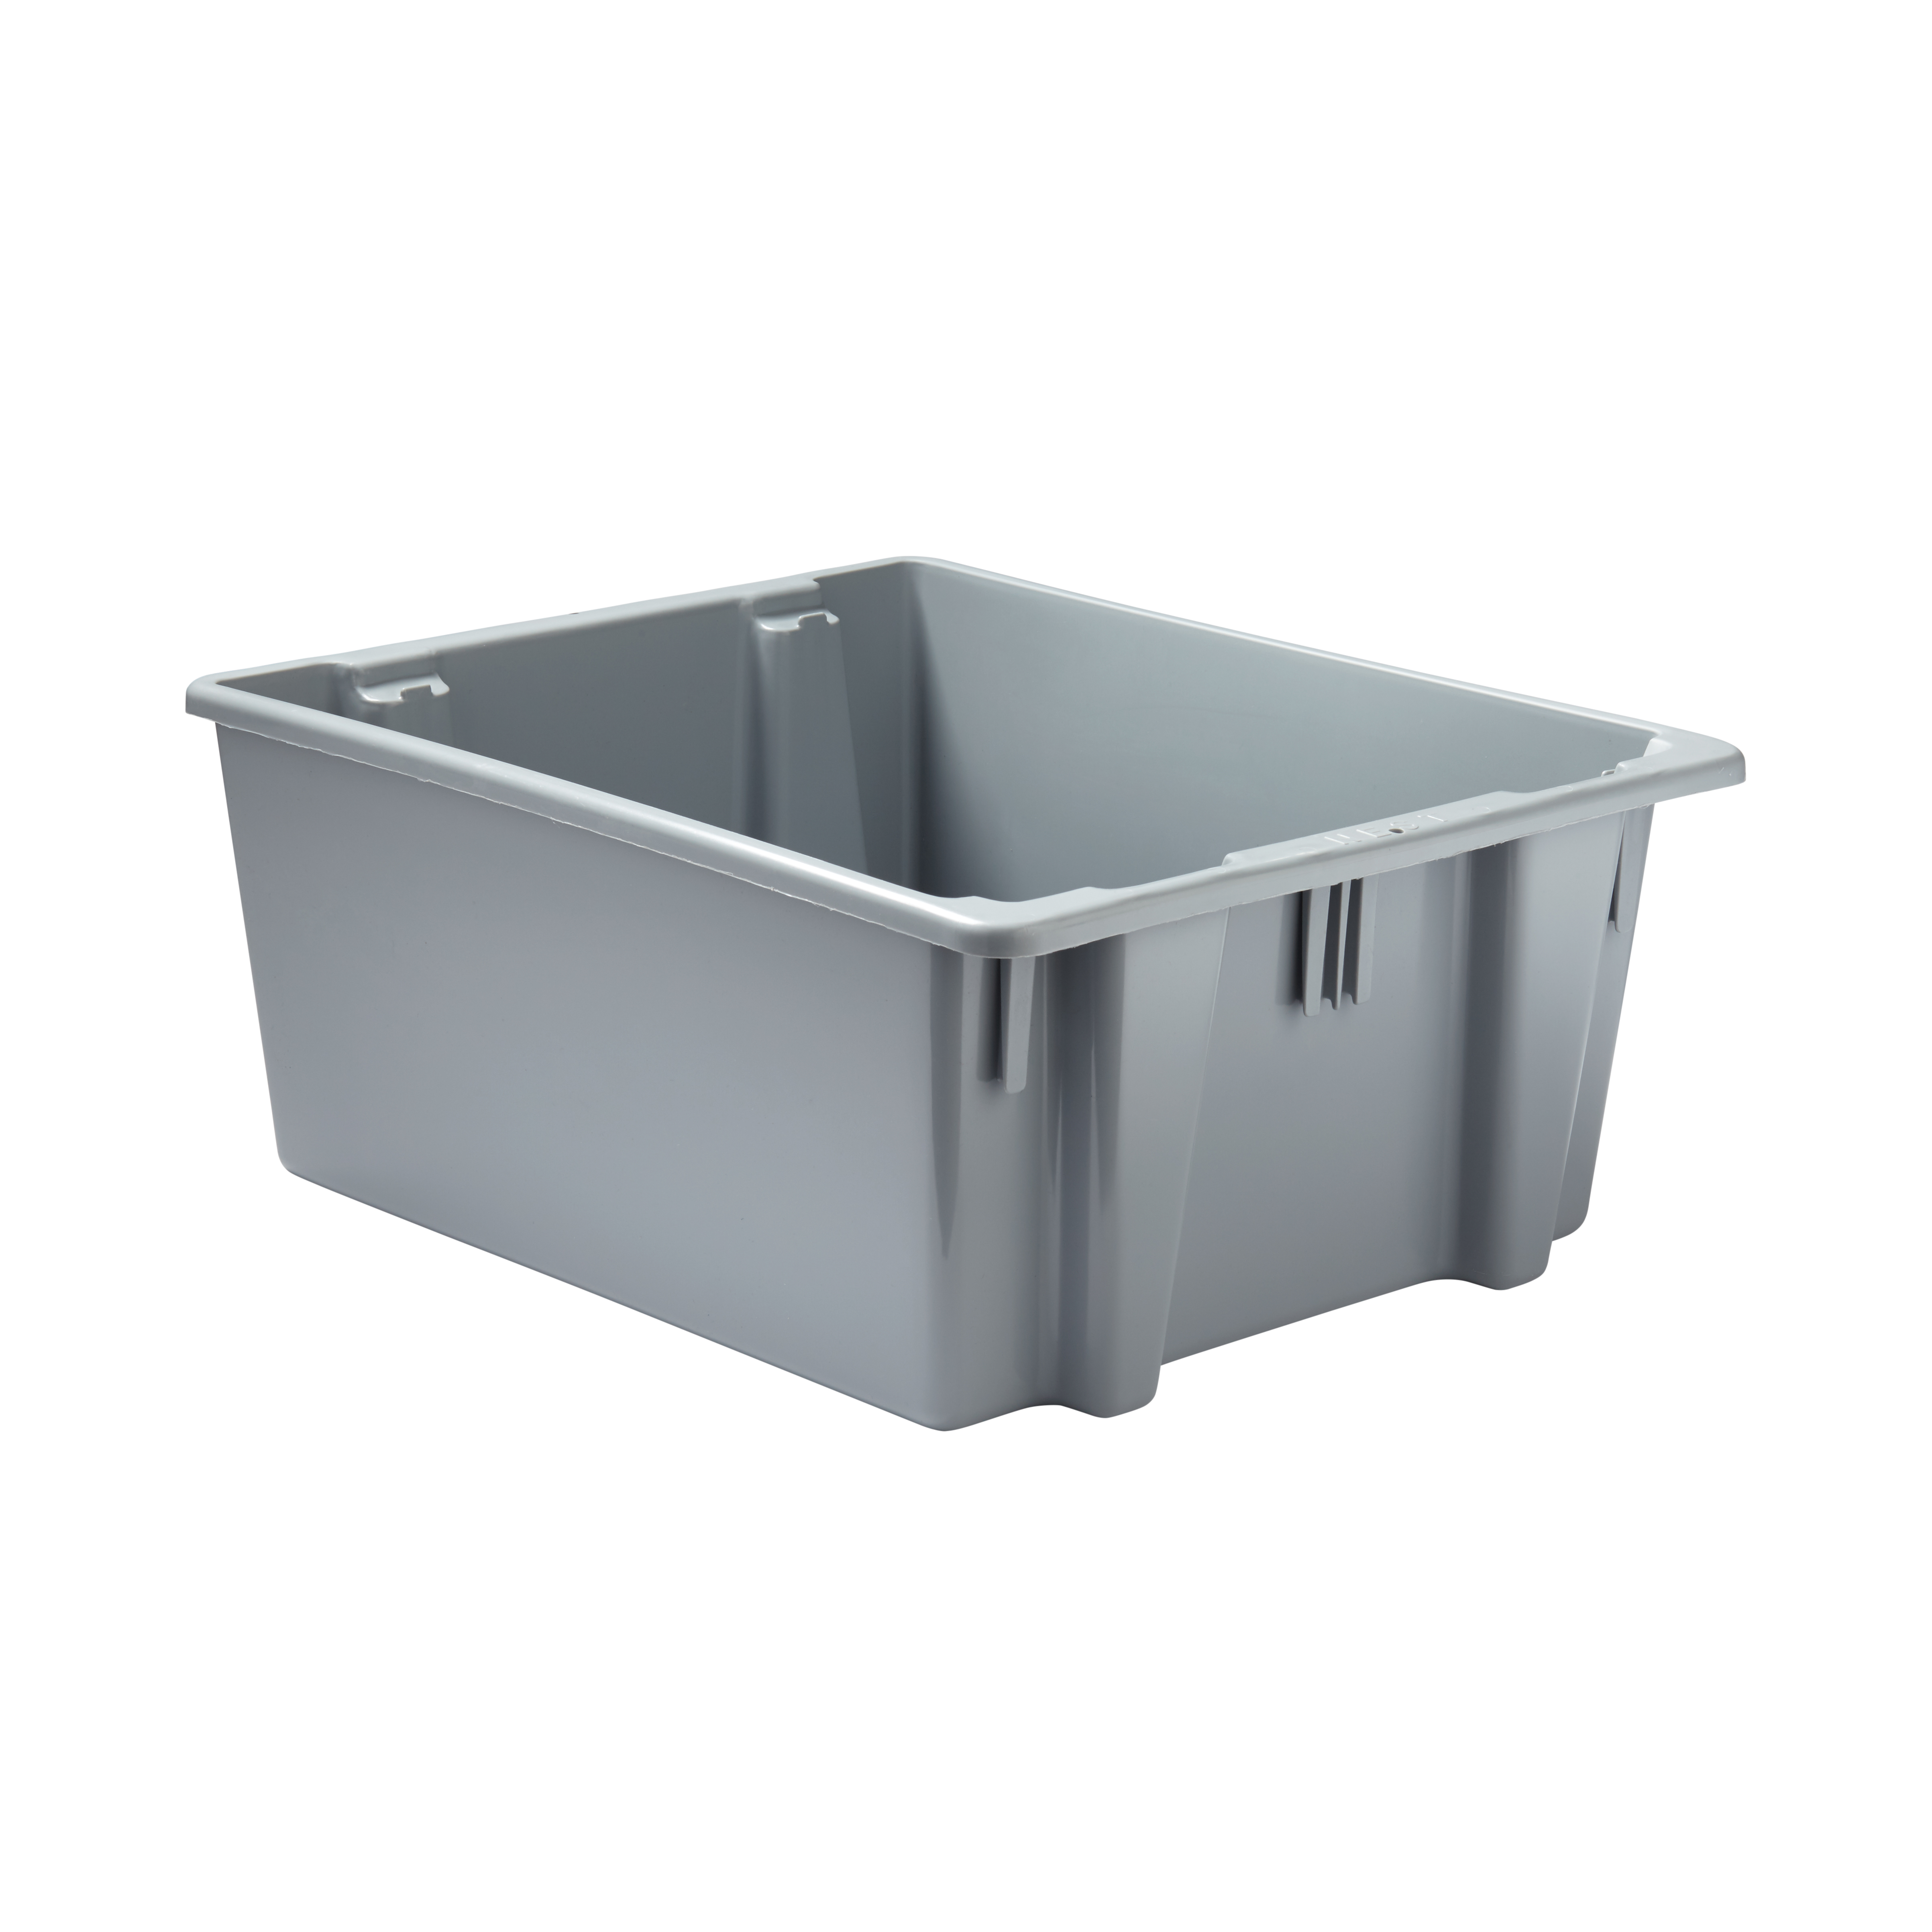 Rubbermaid Commercial Products FG173100GRAY tote box